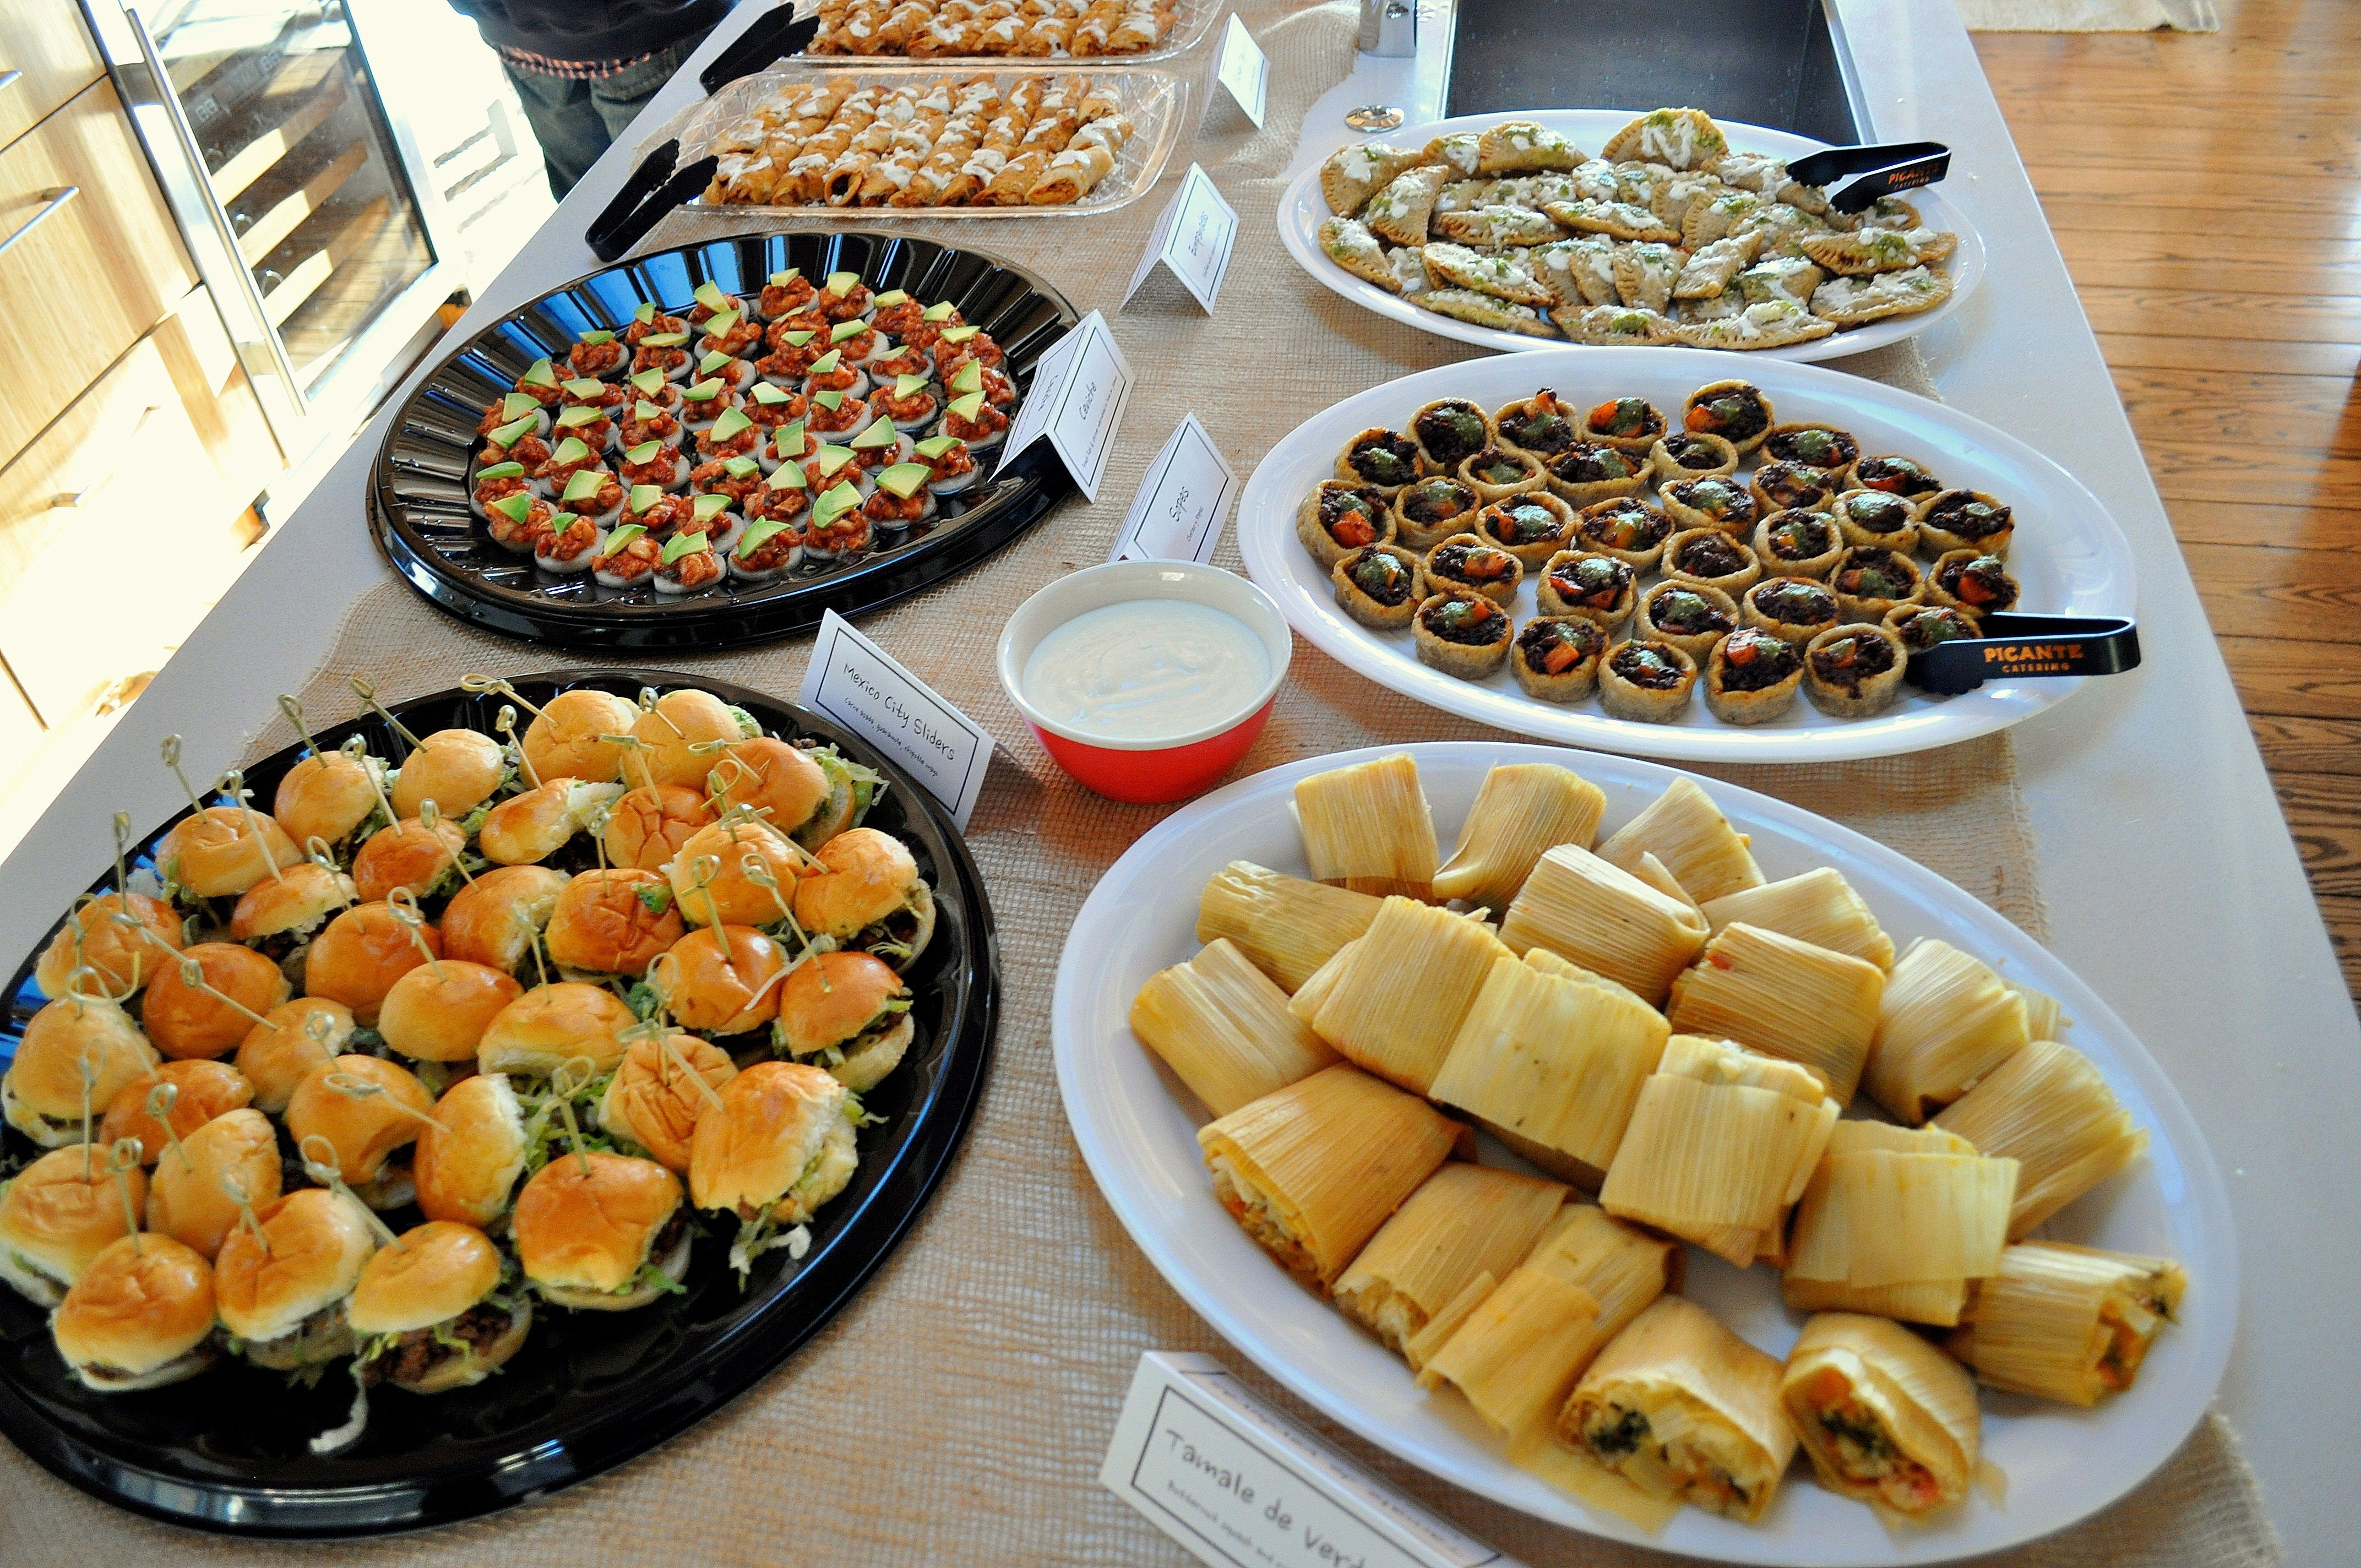 10 Fabulous Baby Shower Food Ideas For Girls baby shower food ideas for girl surprising finger a pinterest on 2020